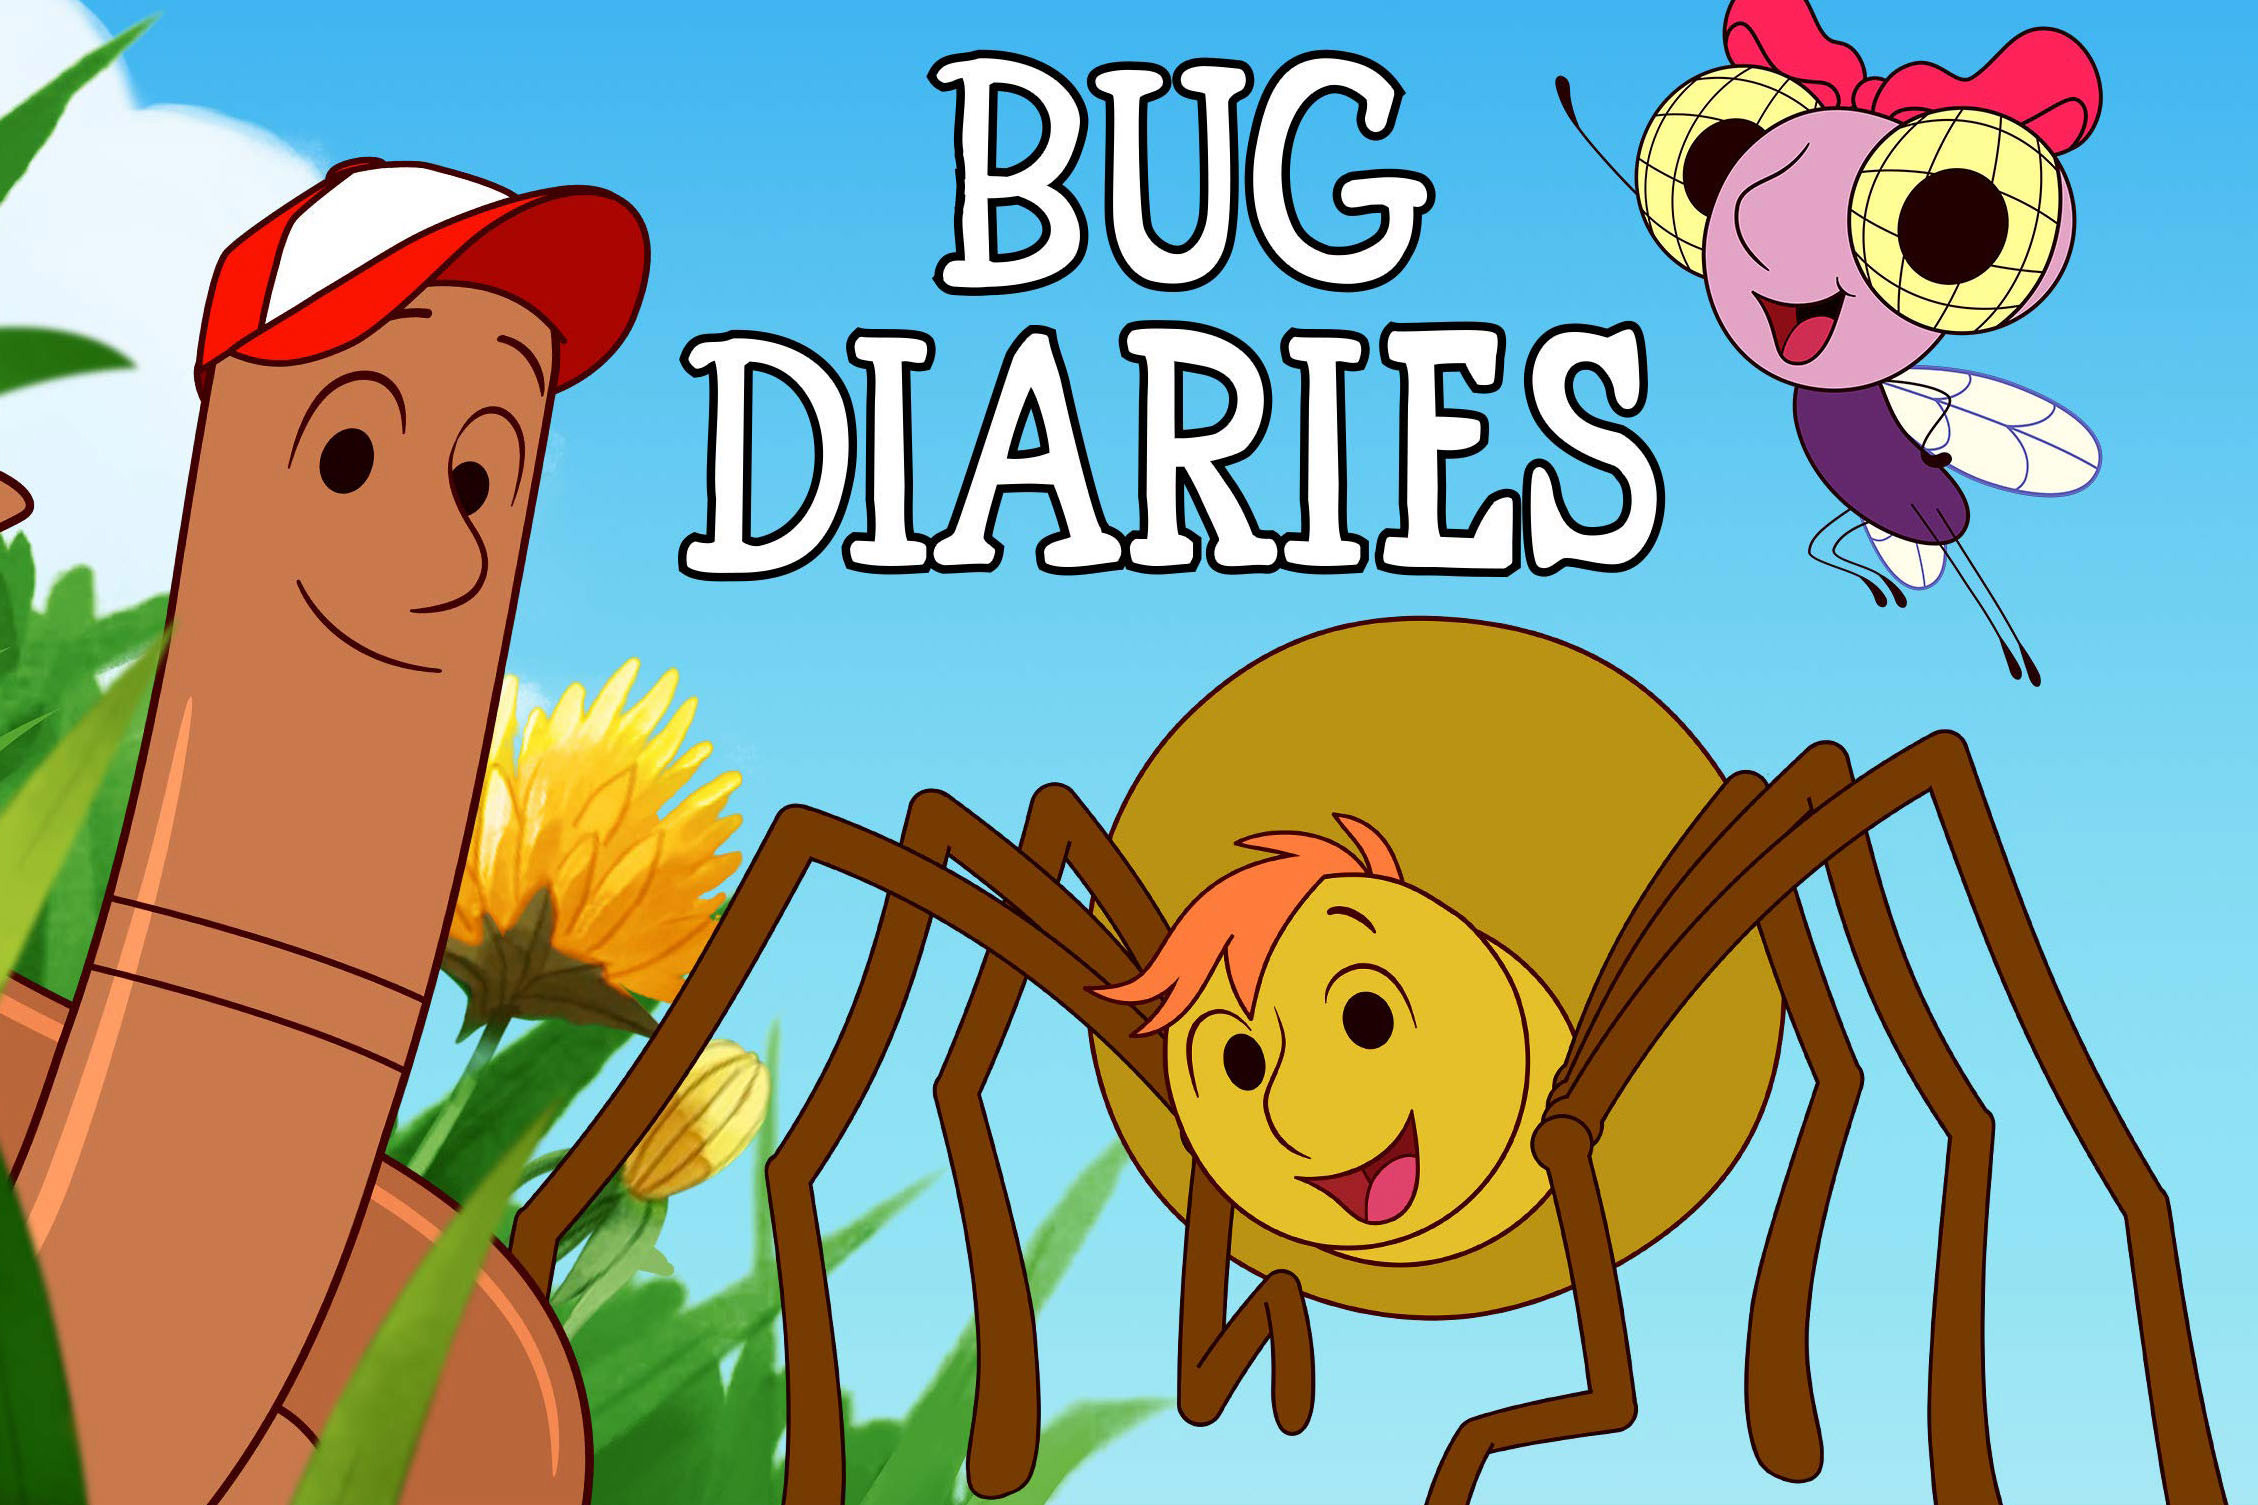 It's Bug-tastic! - I worked as Storyboard Revisionist/ Junior Storyboard Artist on Bug Diaries Season 1, a 2D animated television show. The project was created by Lighthouse Studios for Amazon Prime Video, based on the best selling books of the same name.In my role, I revised the lead storyboard artists' boards, crafting the boards to reflect the wishes of the director and producers. Later in the project I was given more responsibility and created new boards based on scripts.